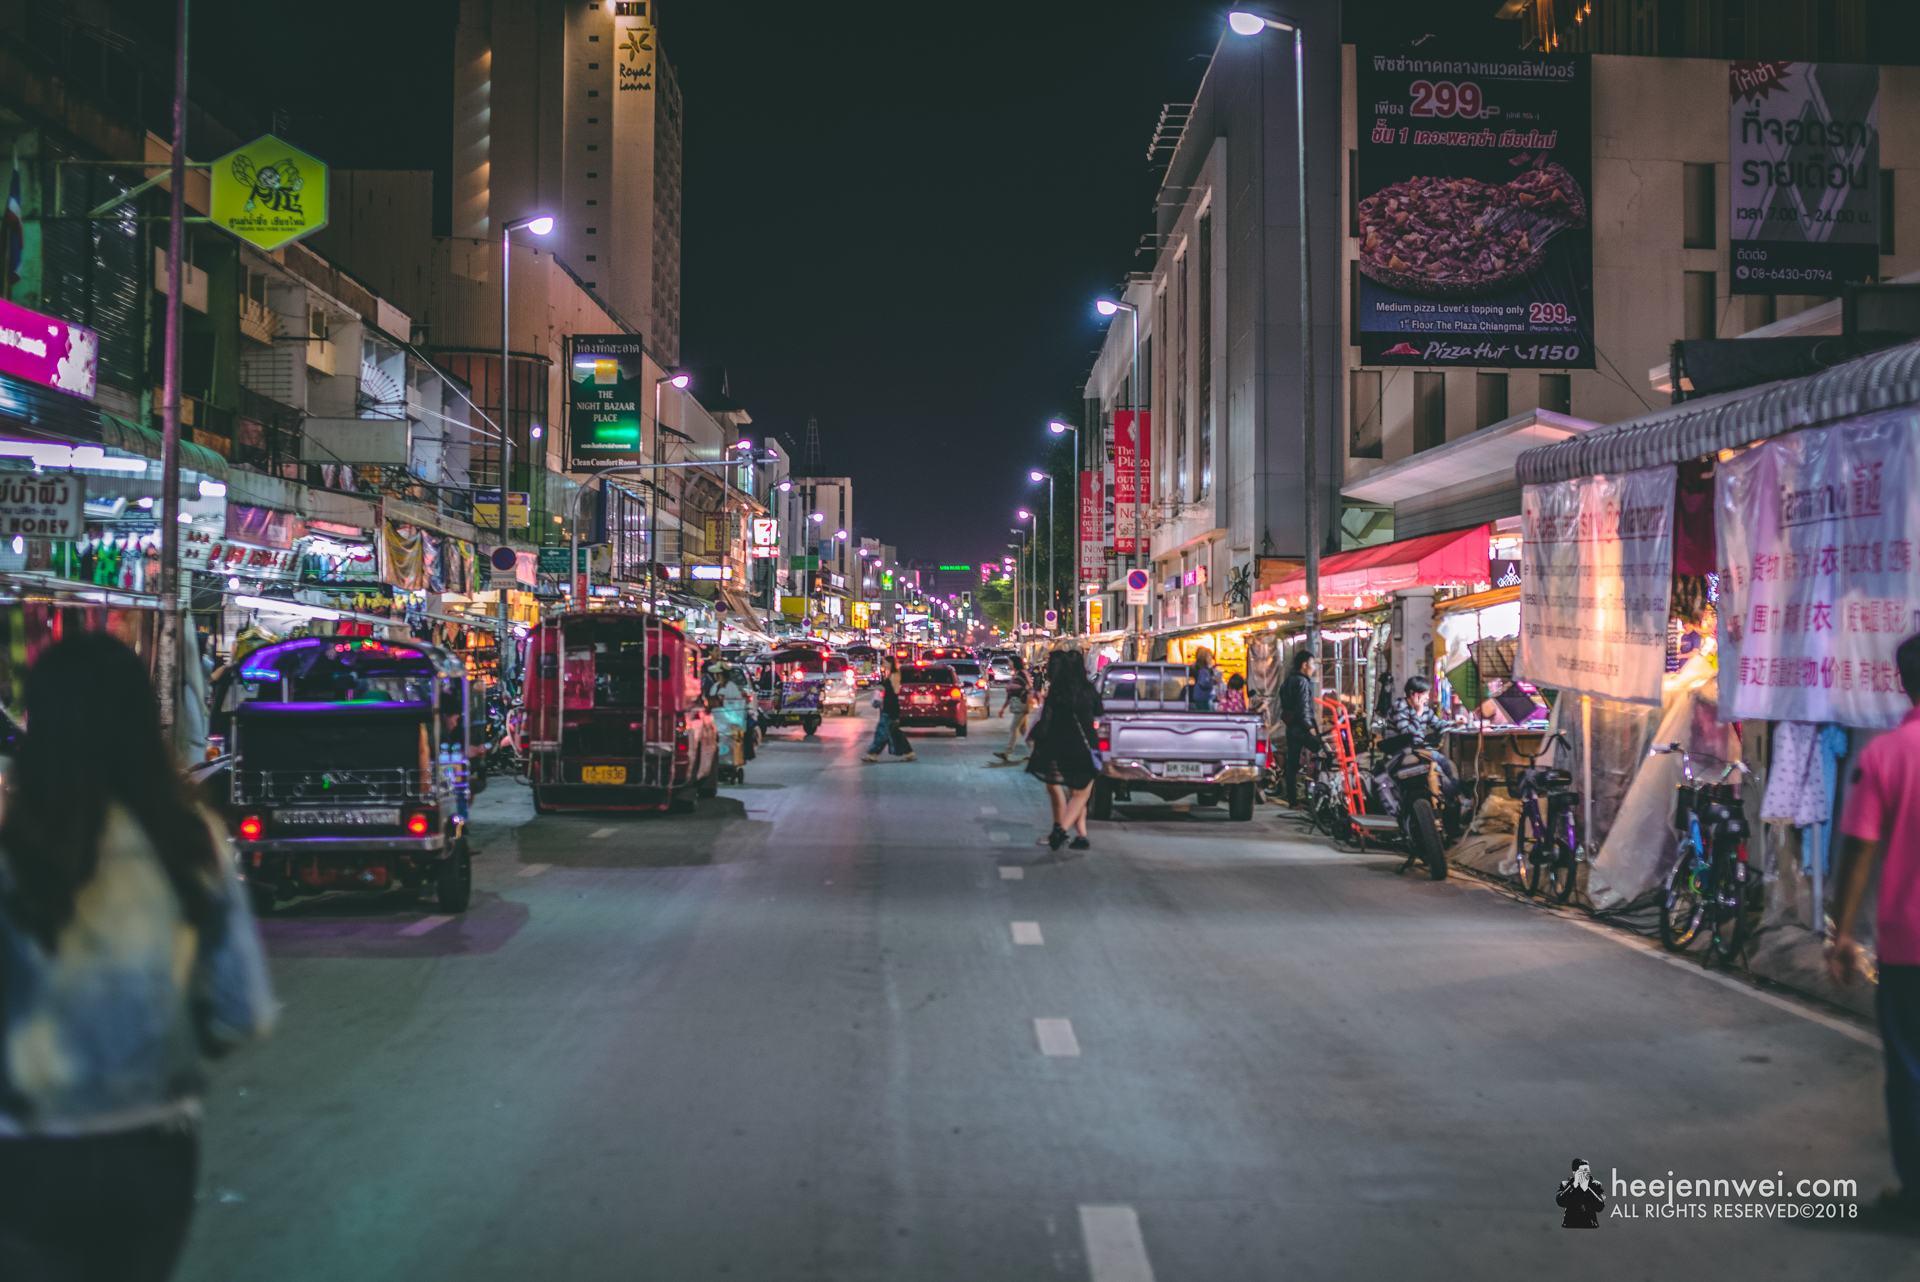 Back to Chiang Mai, spent our last night with a stroll at the Chiang Mai Night Bazaar.